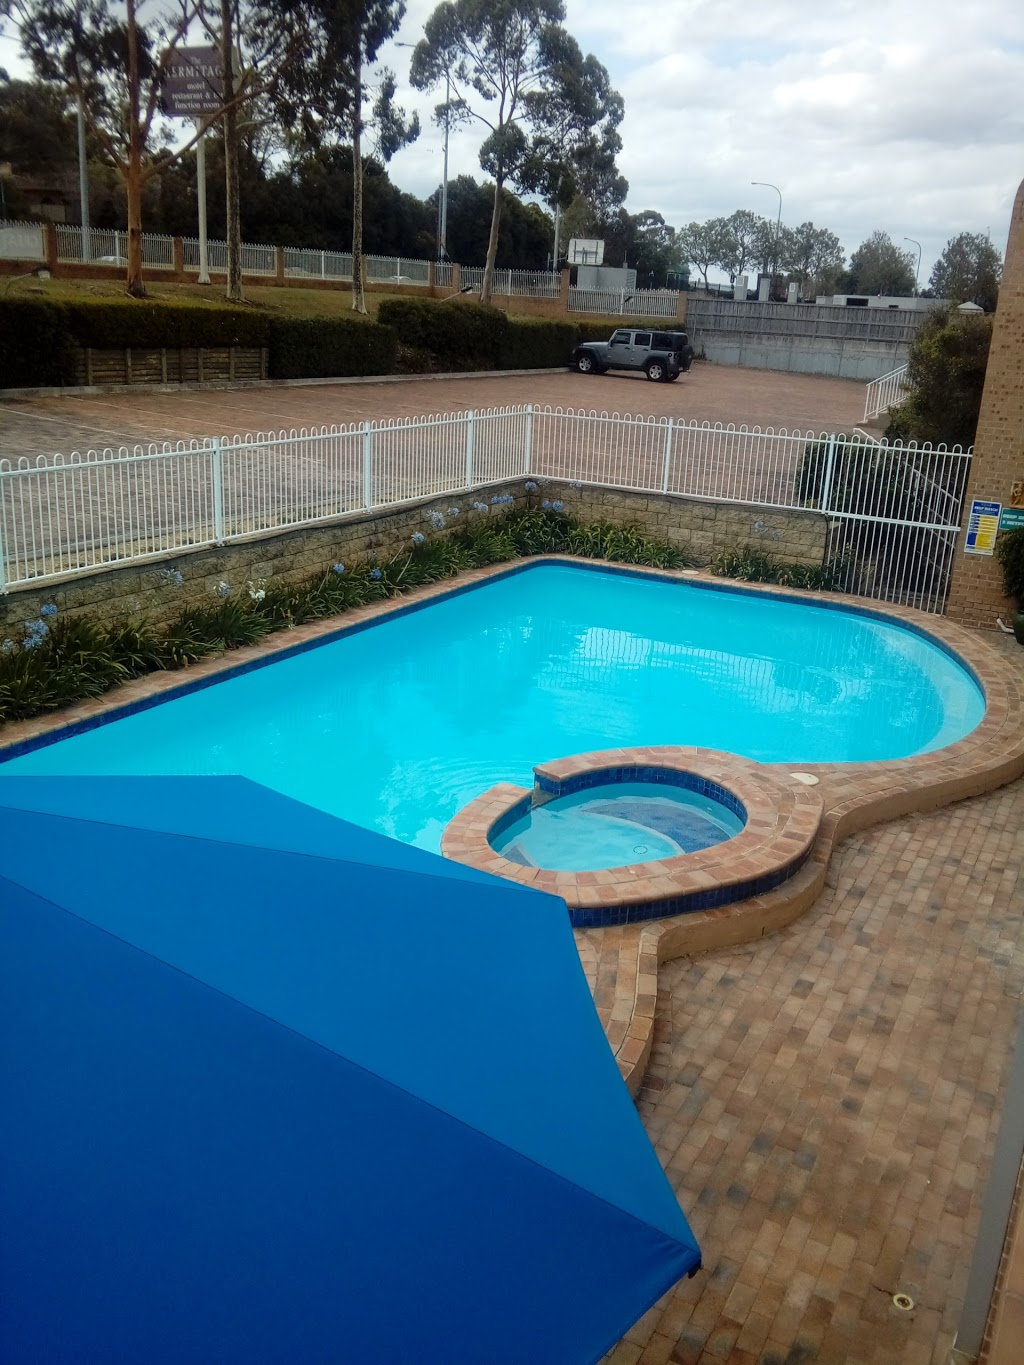 The Hermitage Campbelltown | lodging | 5 Grange Rd, Leumeah NSW 2560, Australia | 0246281144 OR +61 2 4628 1144